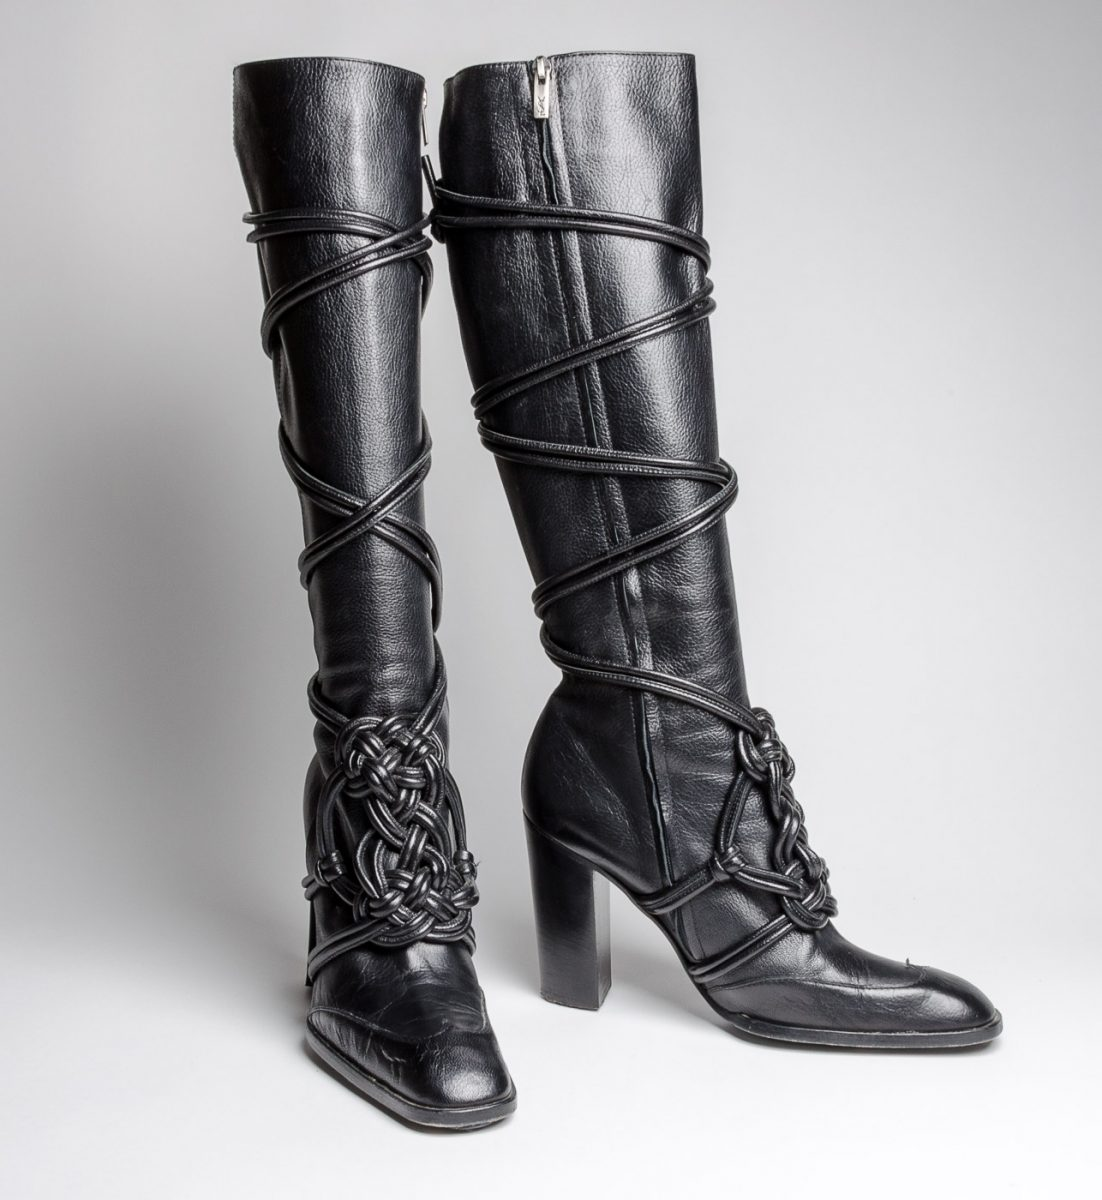 fcaf52bc5e3 YSL Leather Boots with Straps - Double Take of Santa Fe